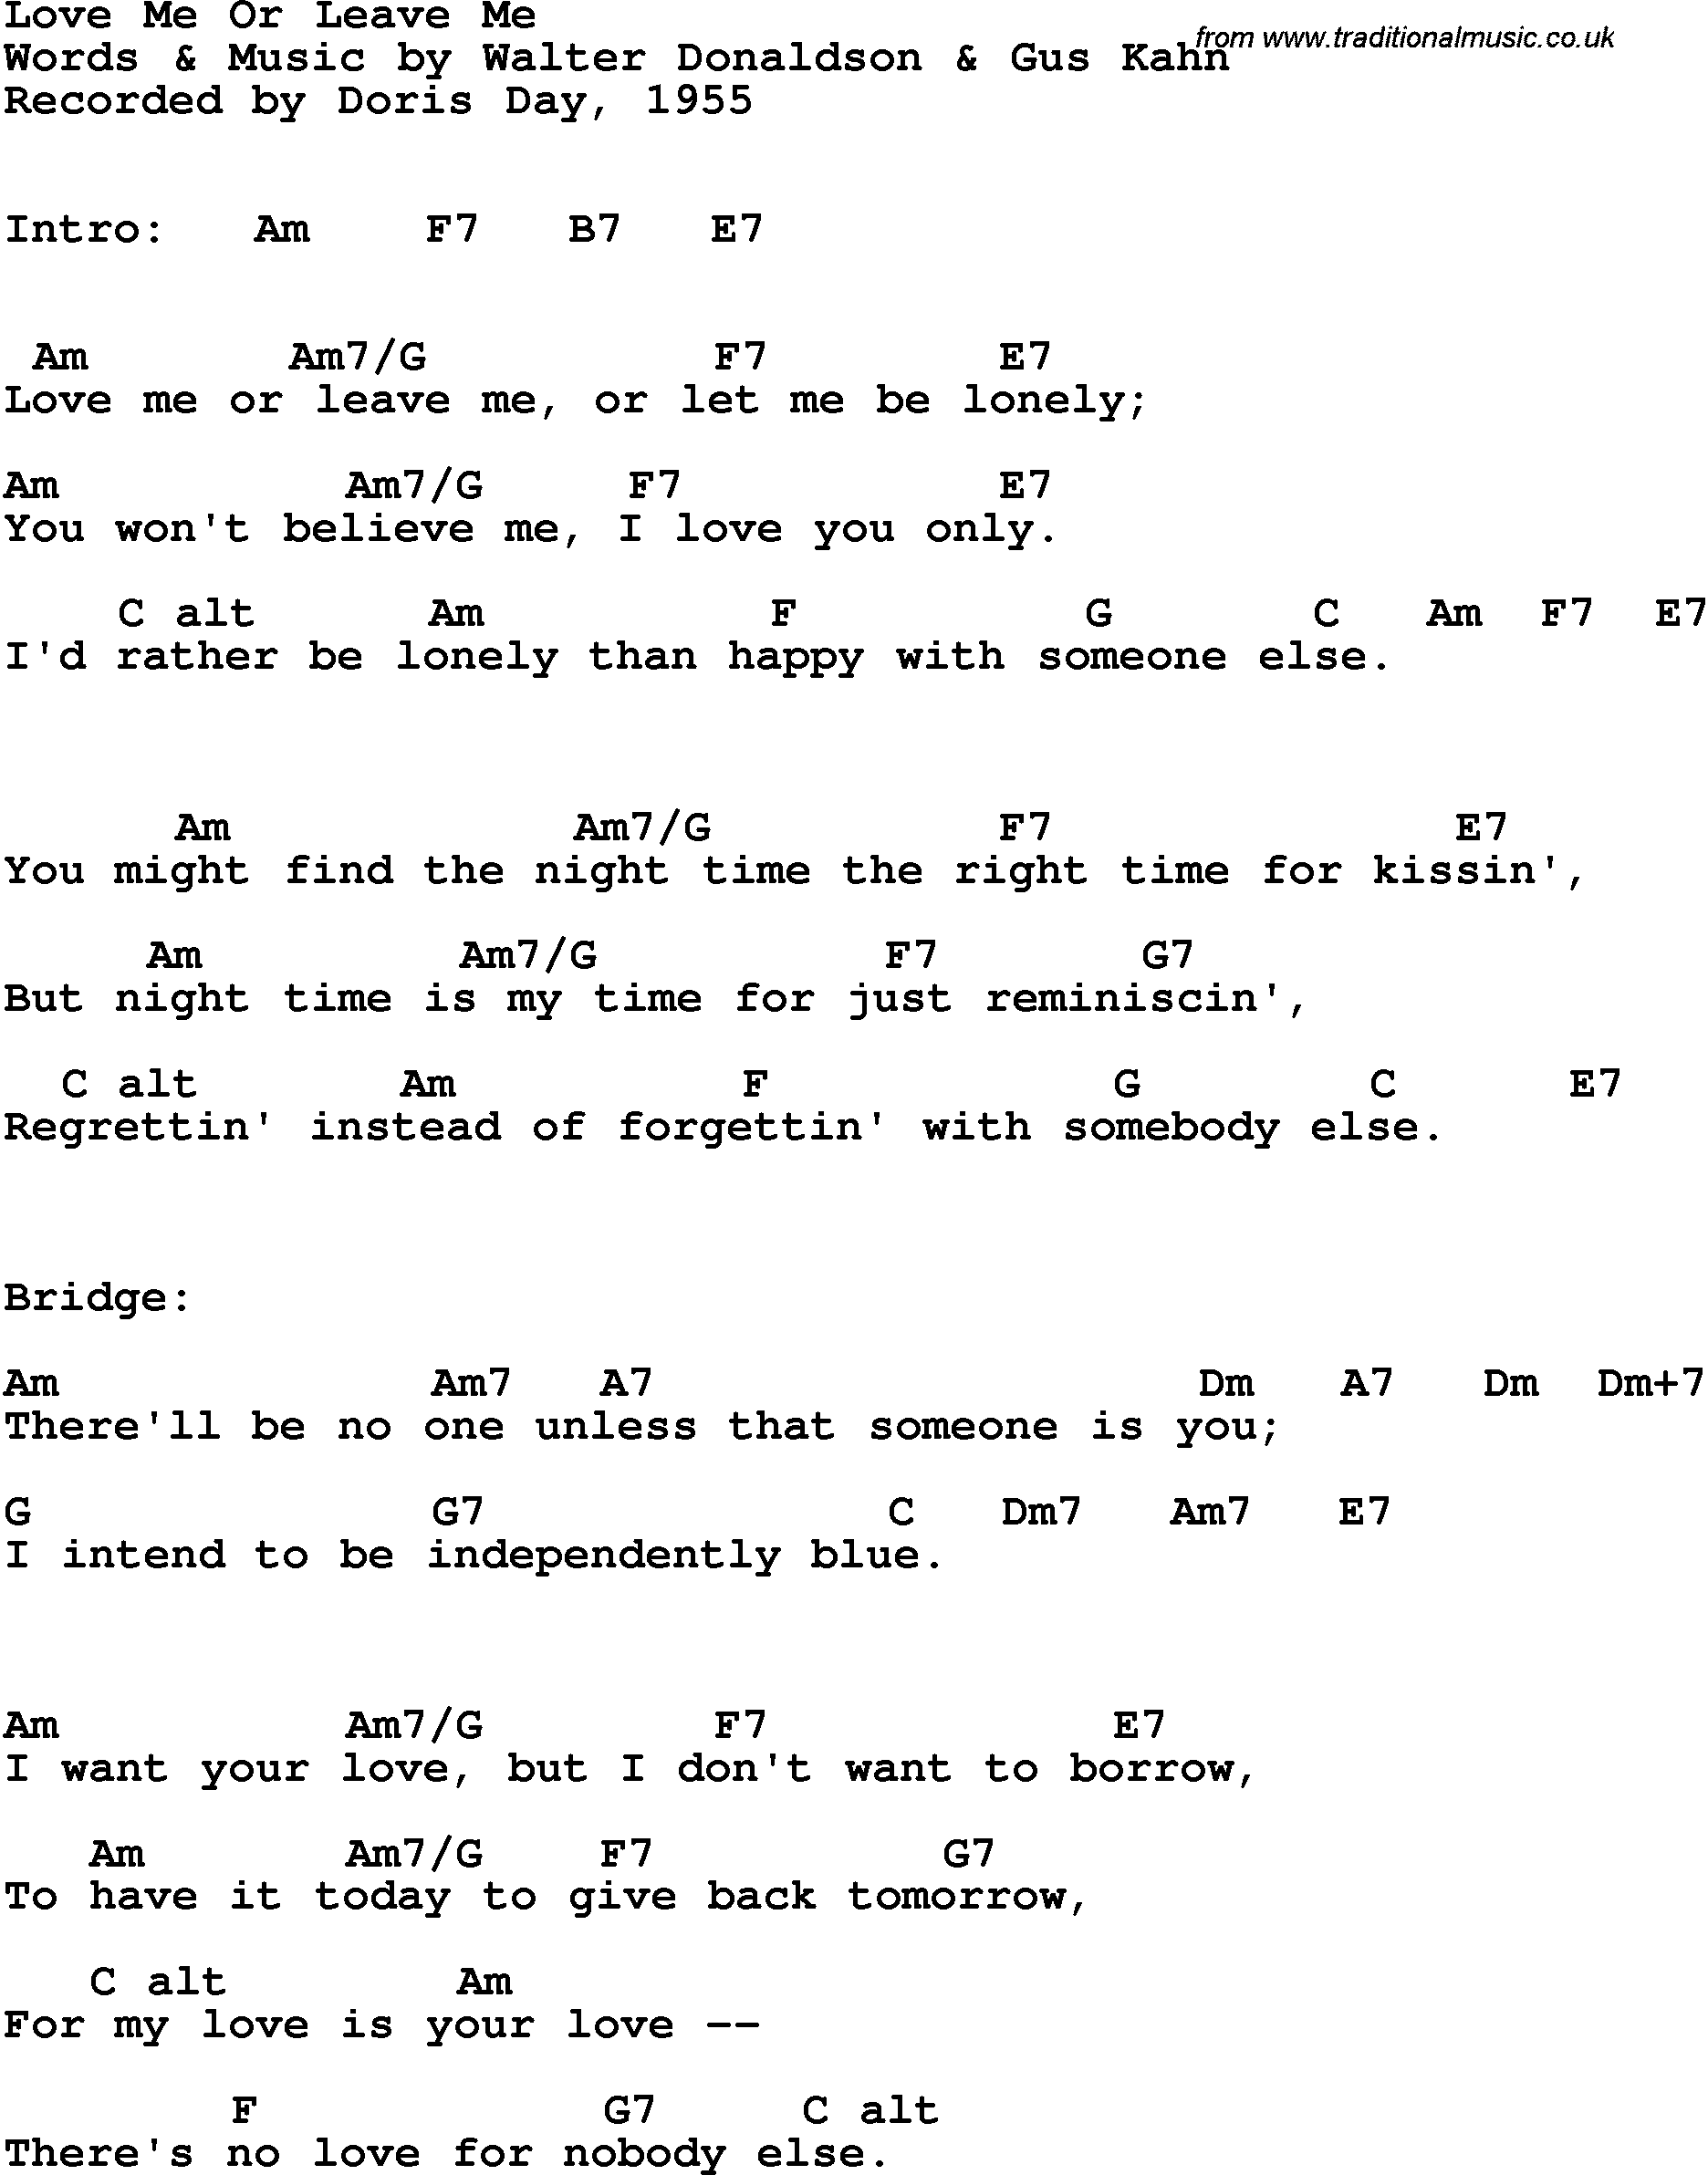 Song Lyrics With Guitar Chords For Love Me Or Leave Me Doris Day 1955